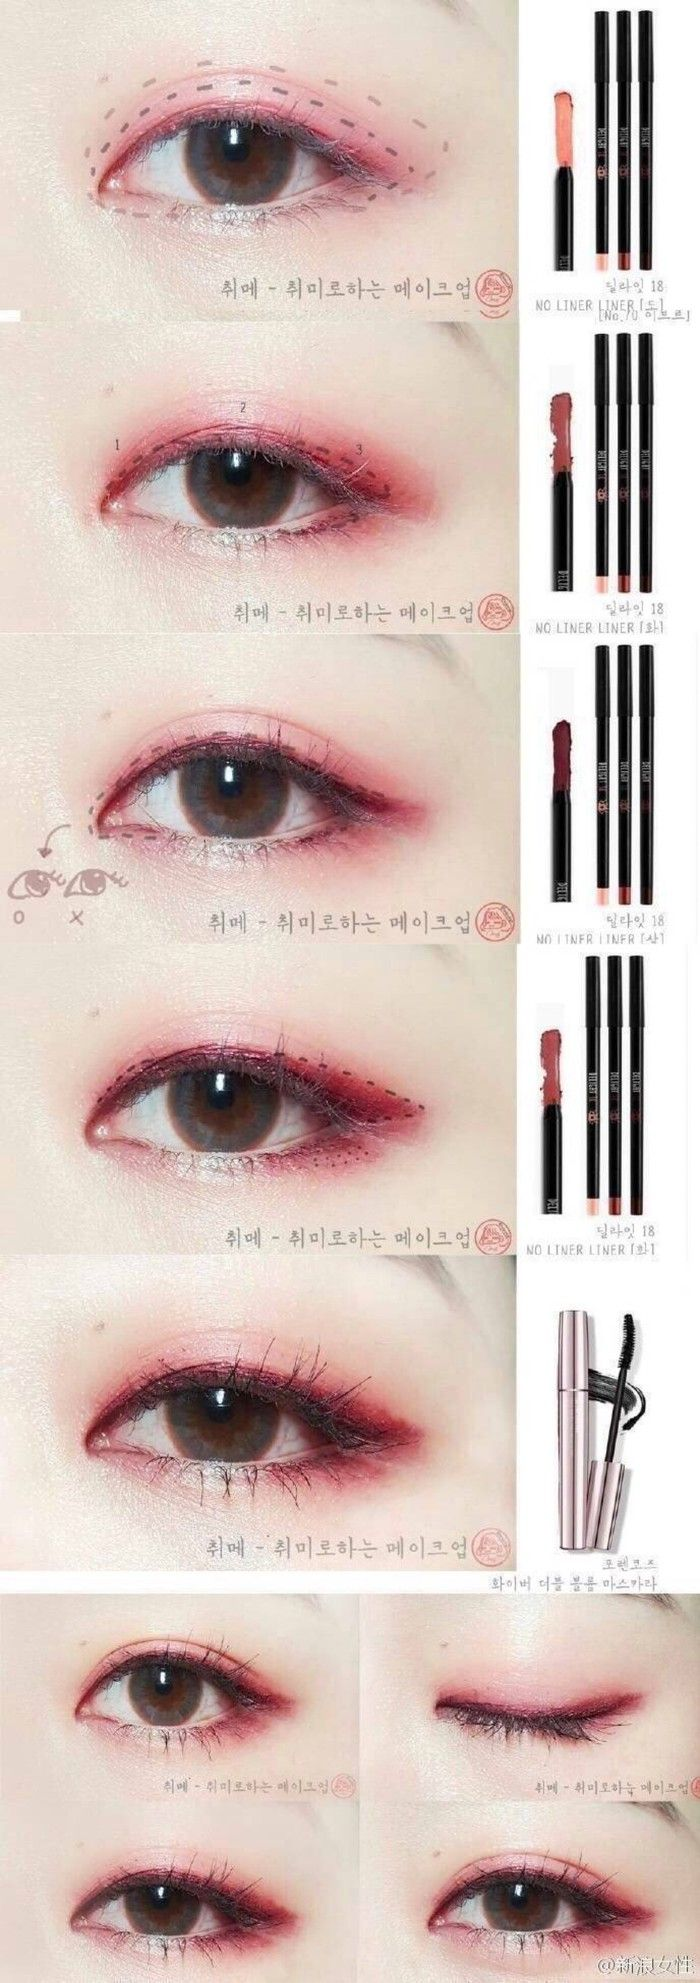 Korean style make up #eye make up #idea